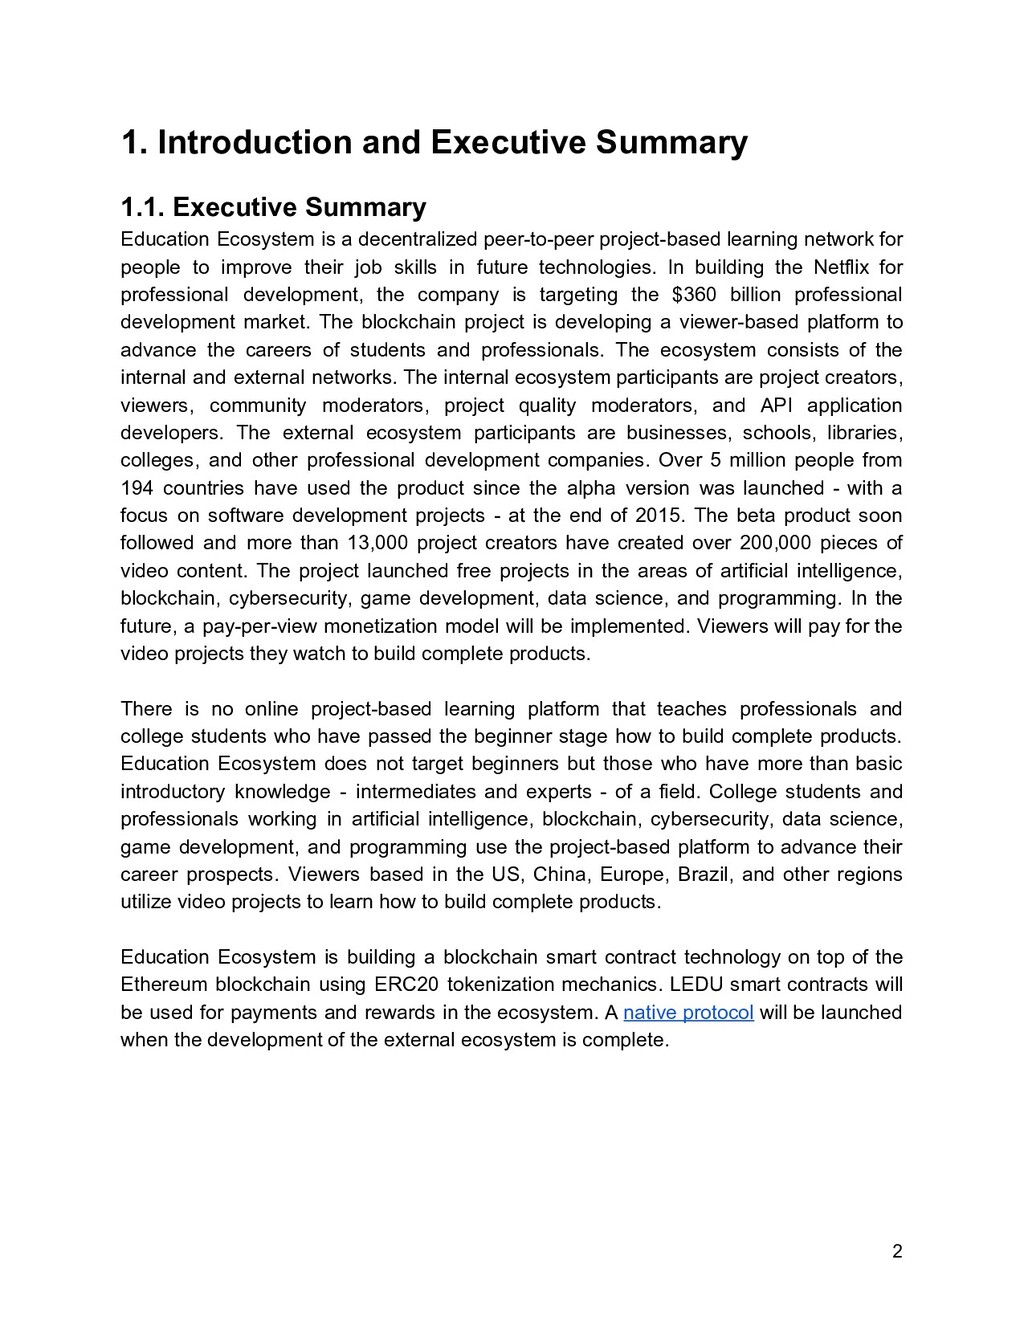 1. Introduction and Executive Summary 1.1. Exec...